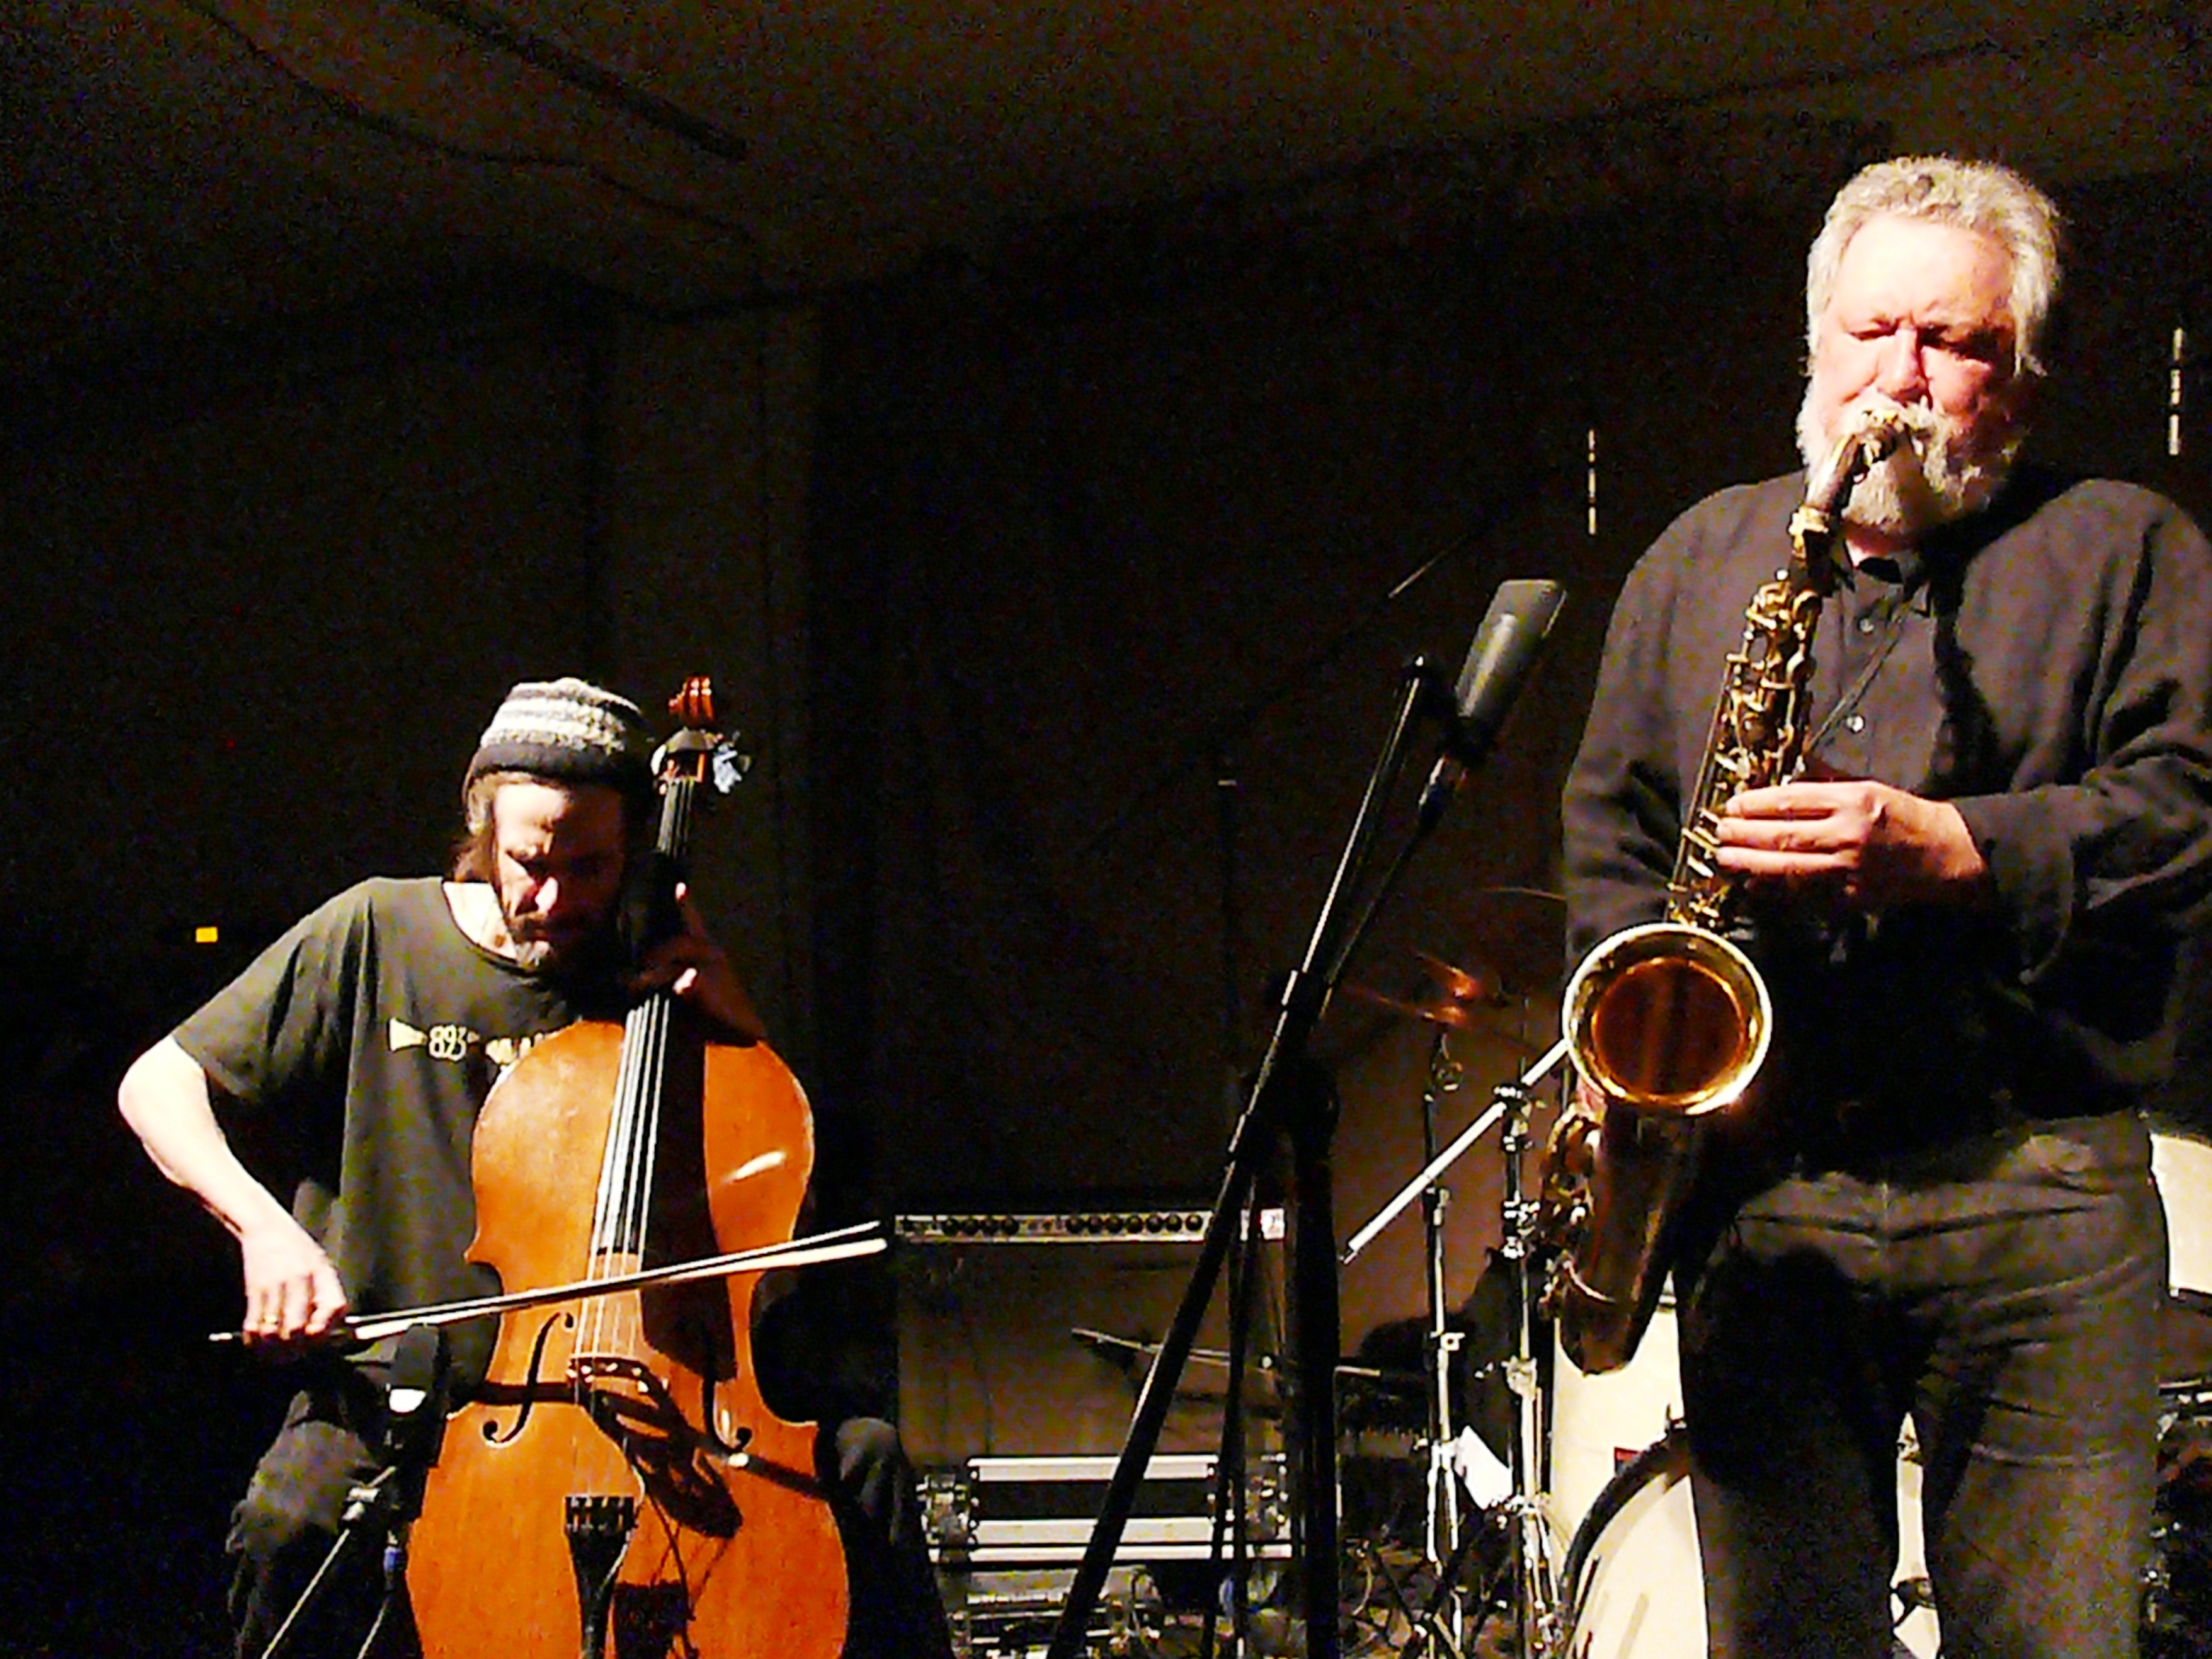 Fred Lonberg-Holm and Evan Parker at Cafe Oto, London in March 2012